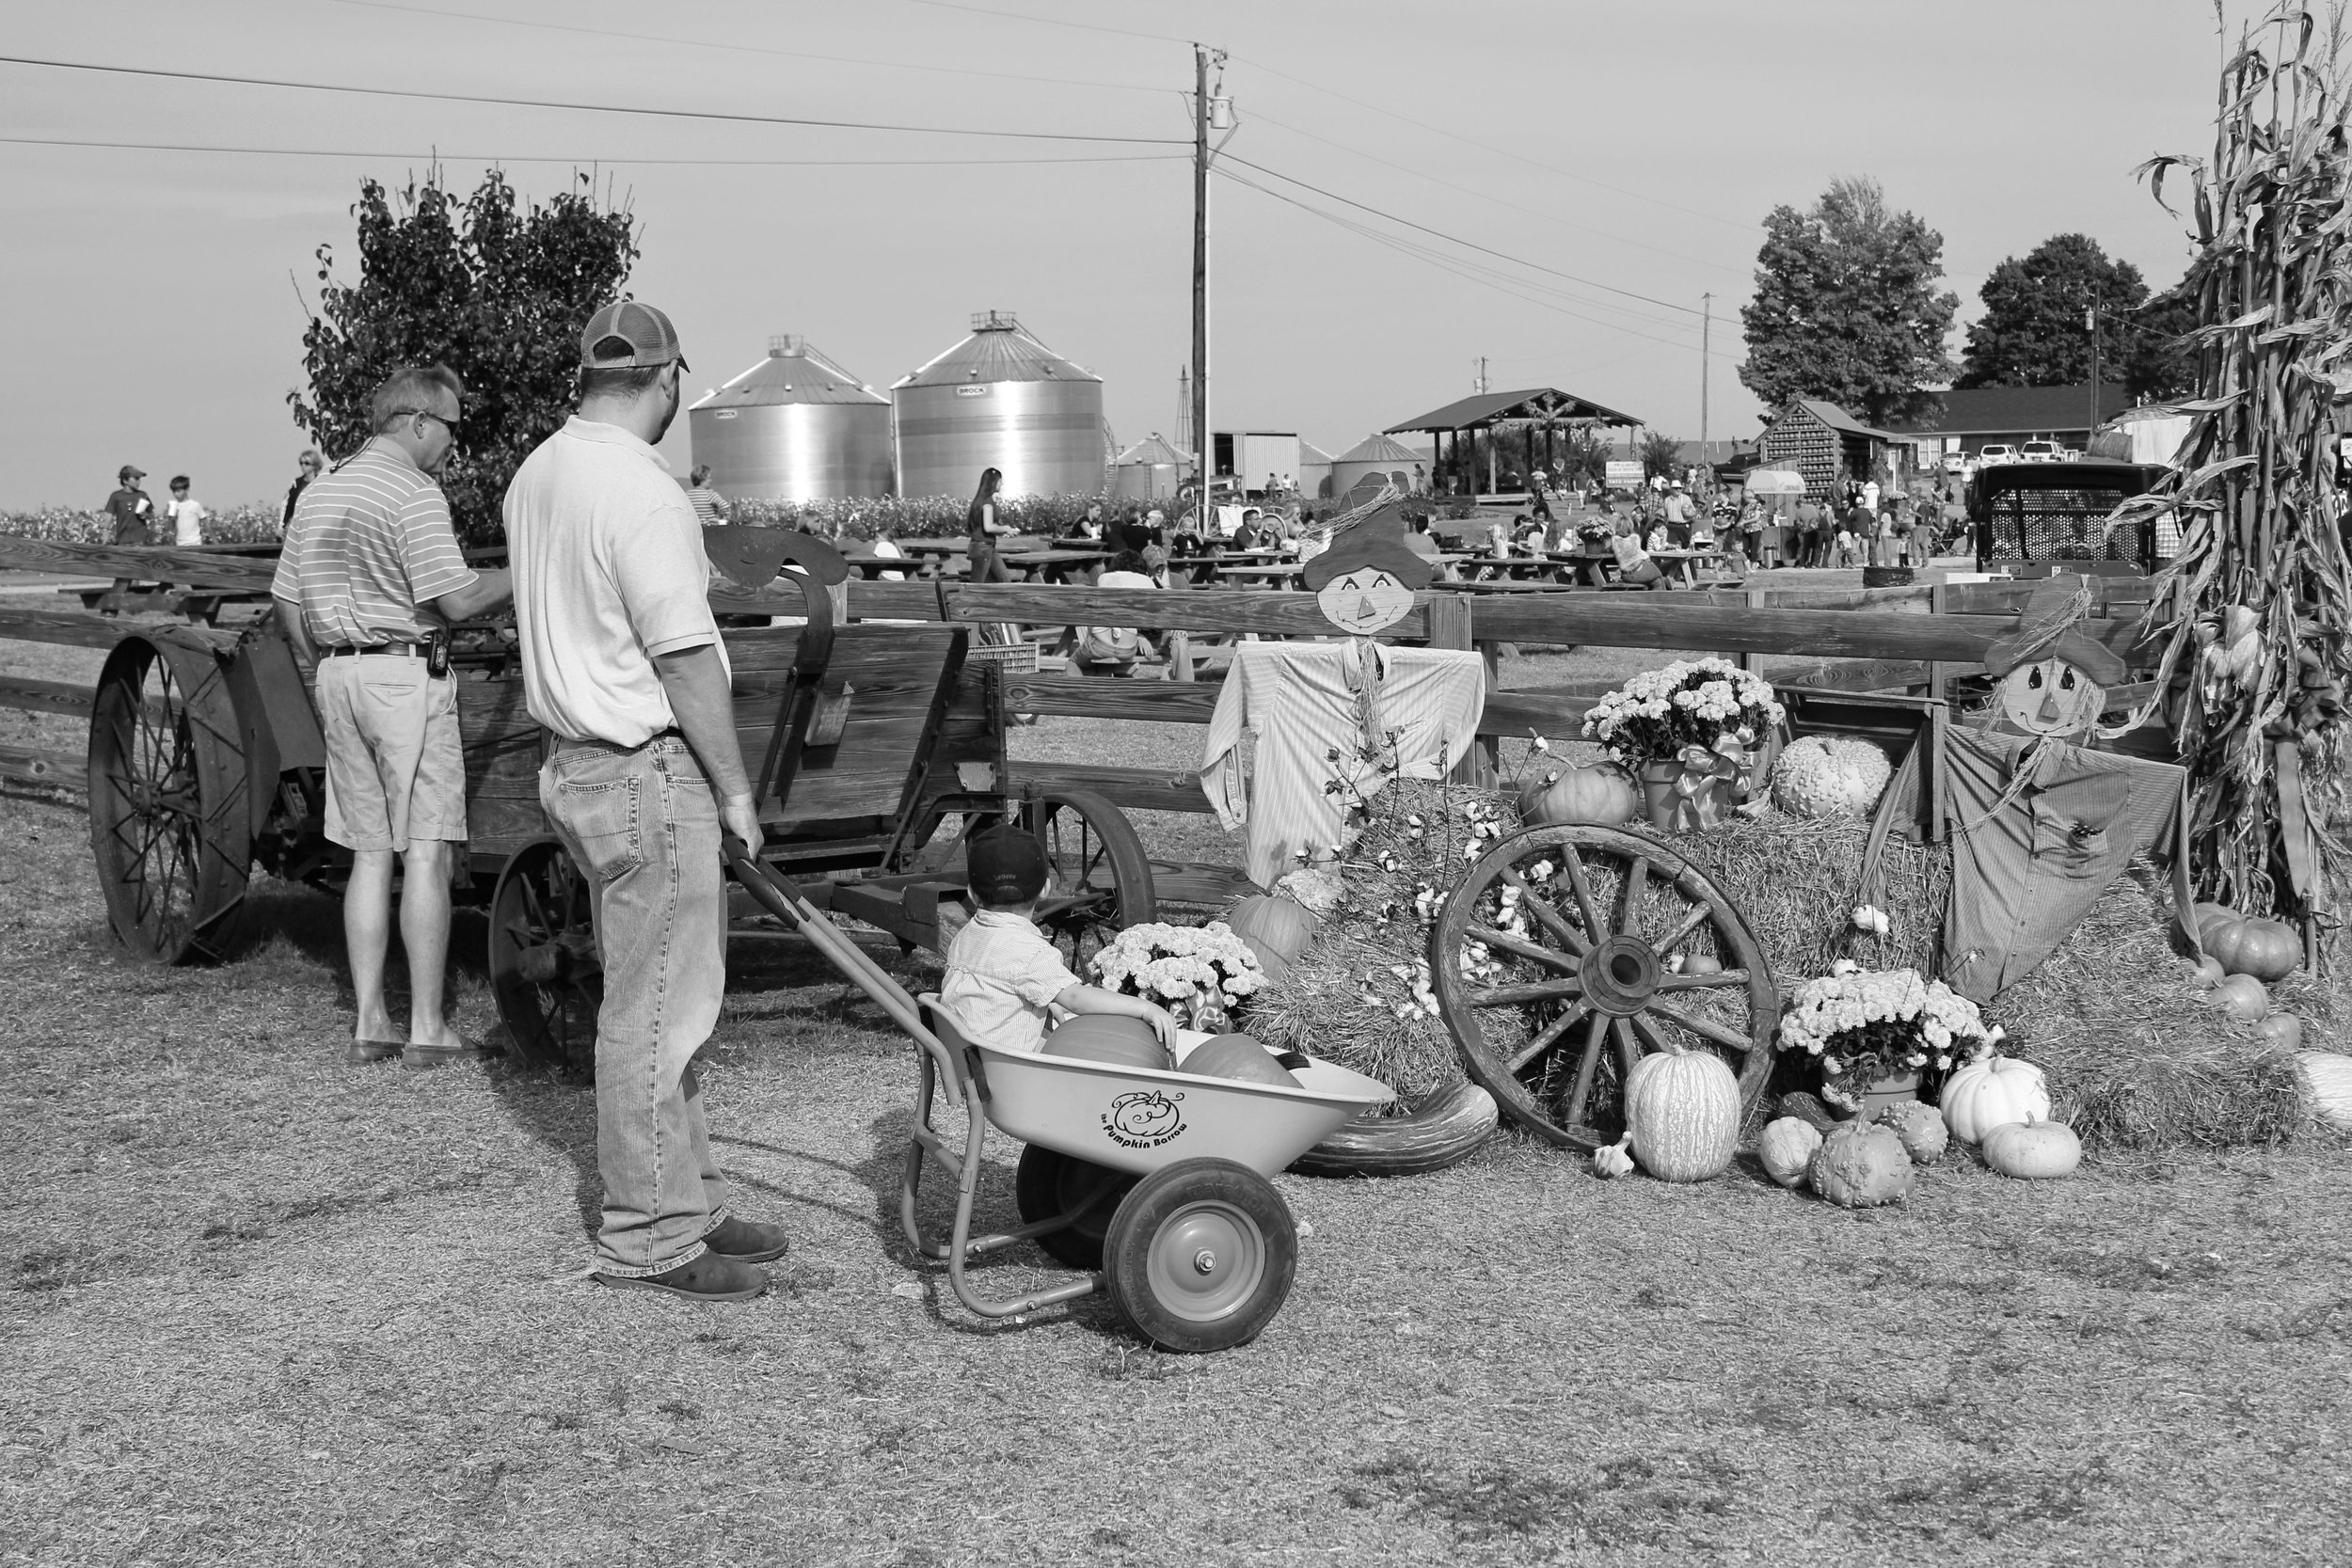 Old-time, high value farming in action.